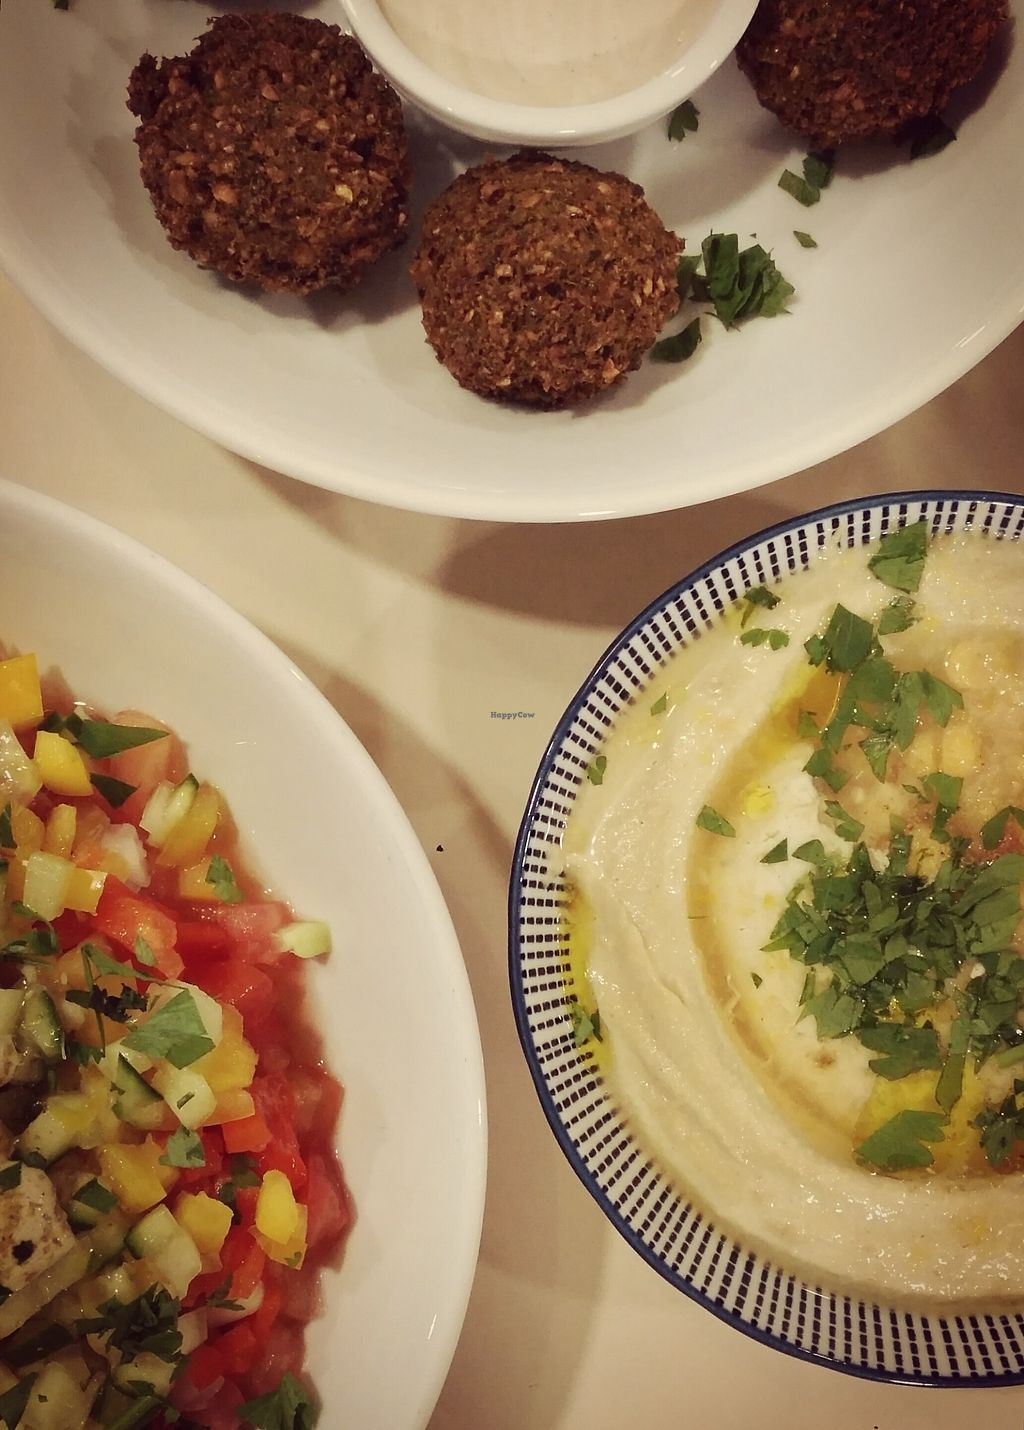 """Photo of CLOSED: The Street  by <a href=""""/members/profile/BrunoMontez"""">BrunoMontez</a> <br/>Salad, falafel and hummus <br/> October 23, 2017  - <a href='/contact/abuse/image/93432/318028'>Report</a>"""